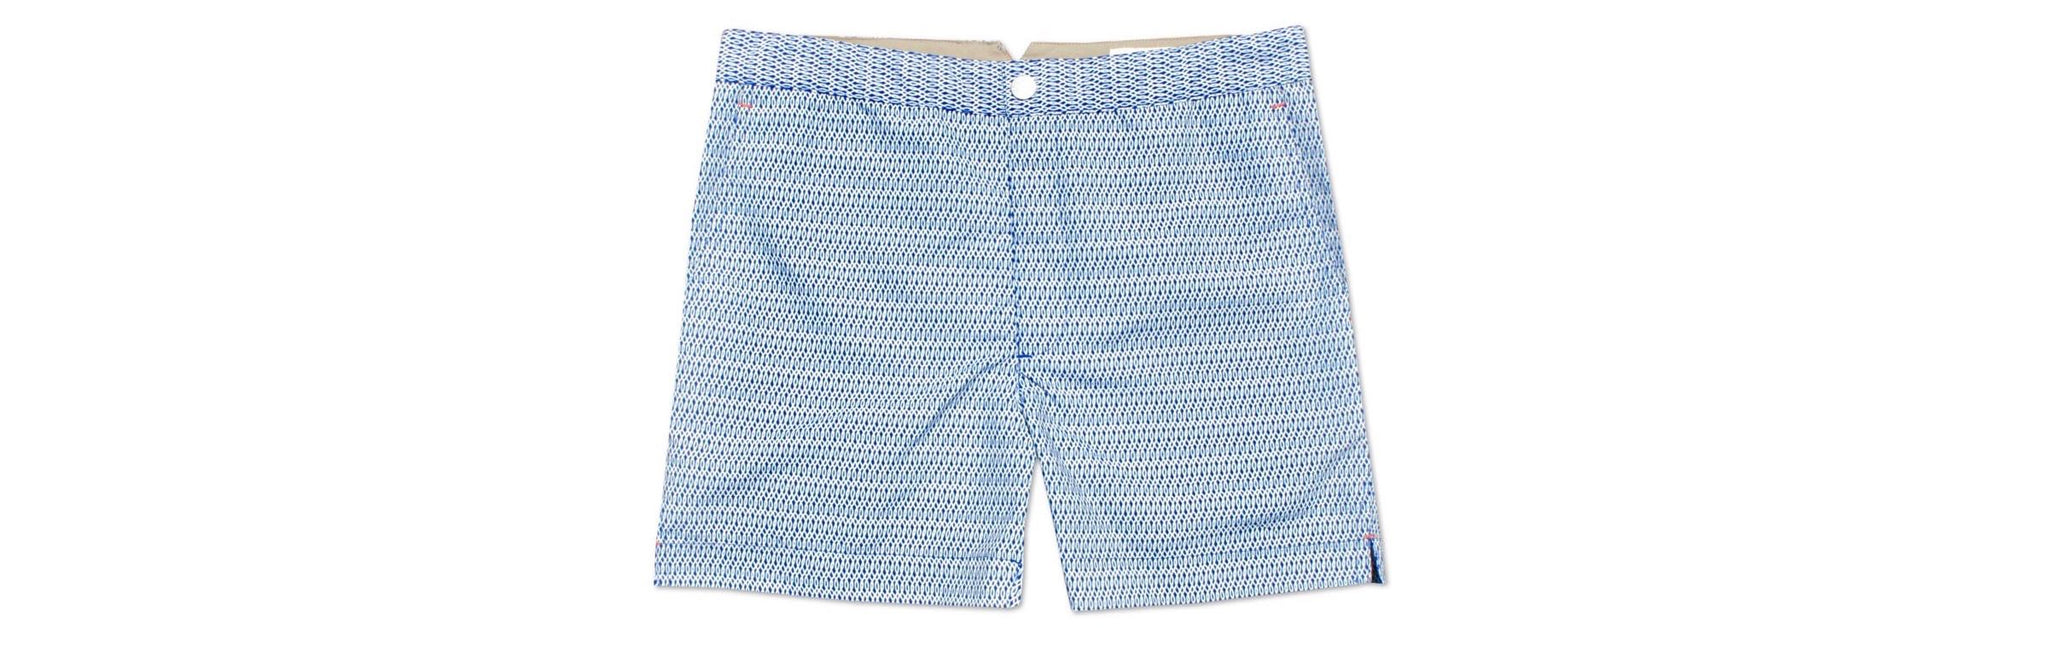 a6c761022a How To Wear Shorts | The Ultimate Guide to Men's Shorts | Mocha Salt